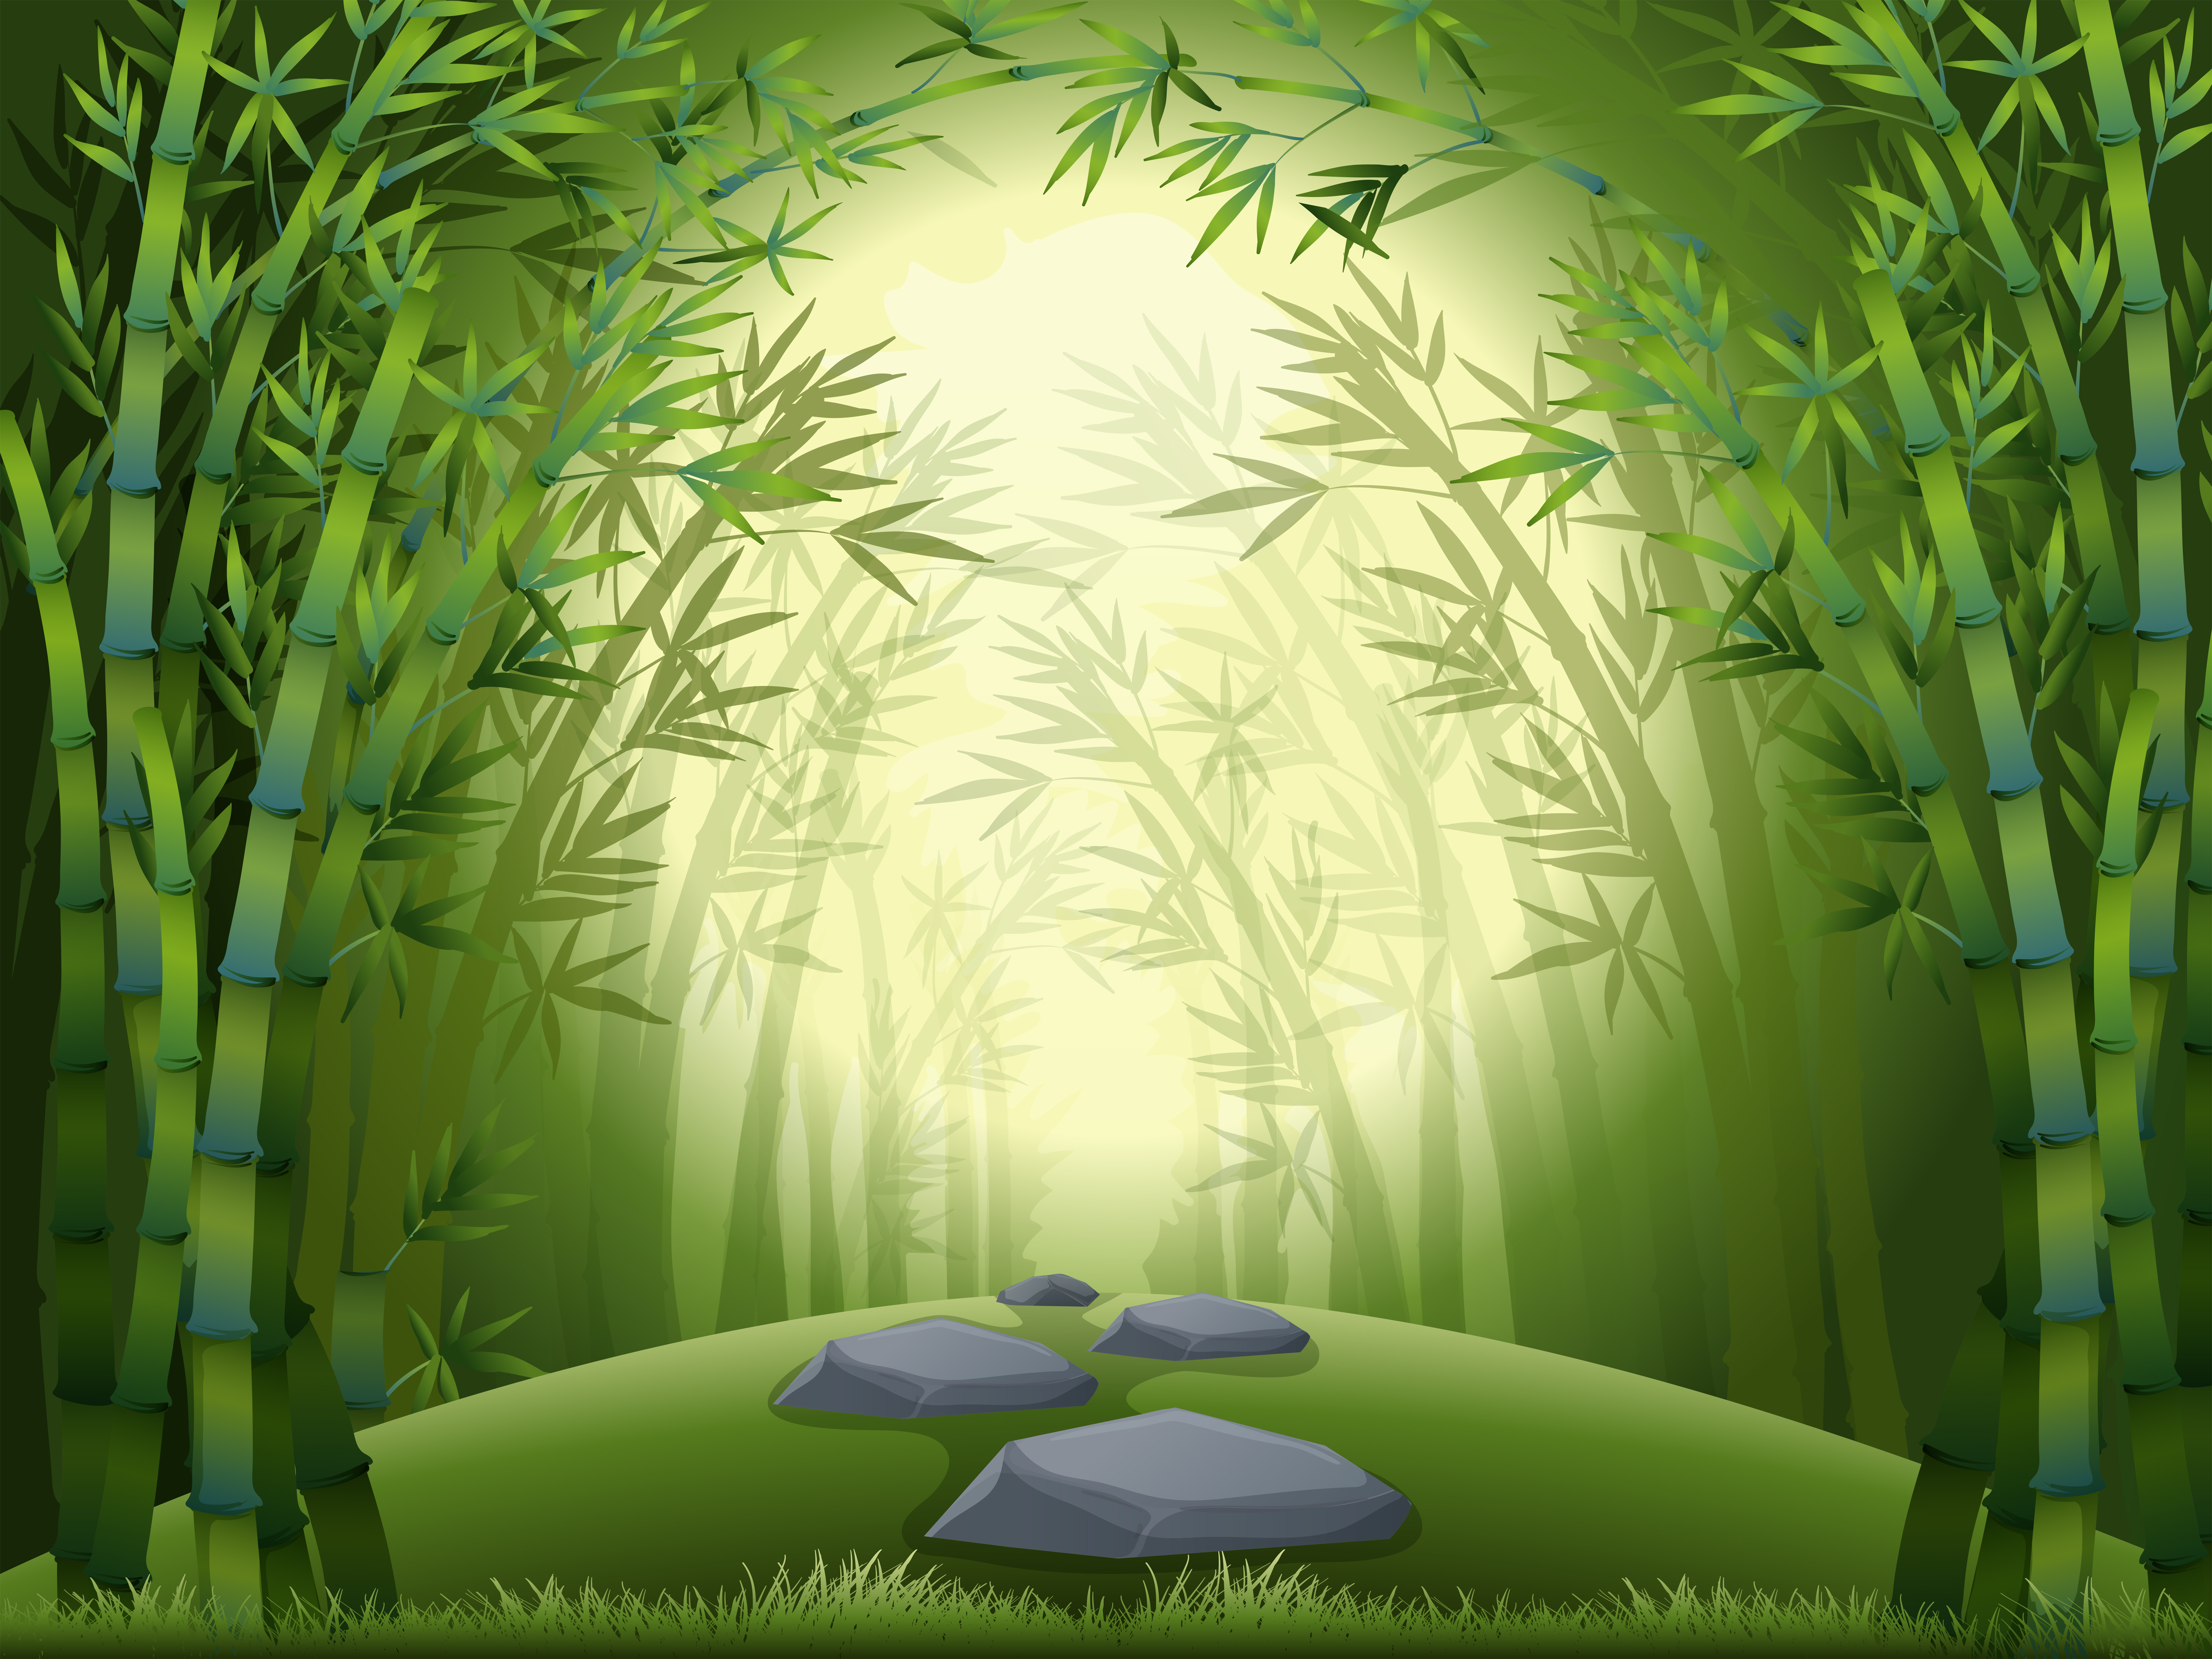 Background Scene With Bamboo Forest Download Free Vector